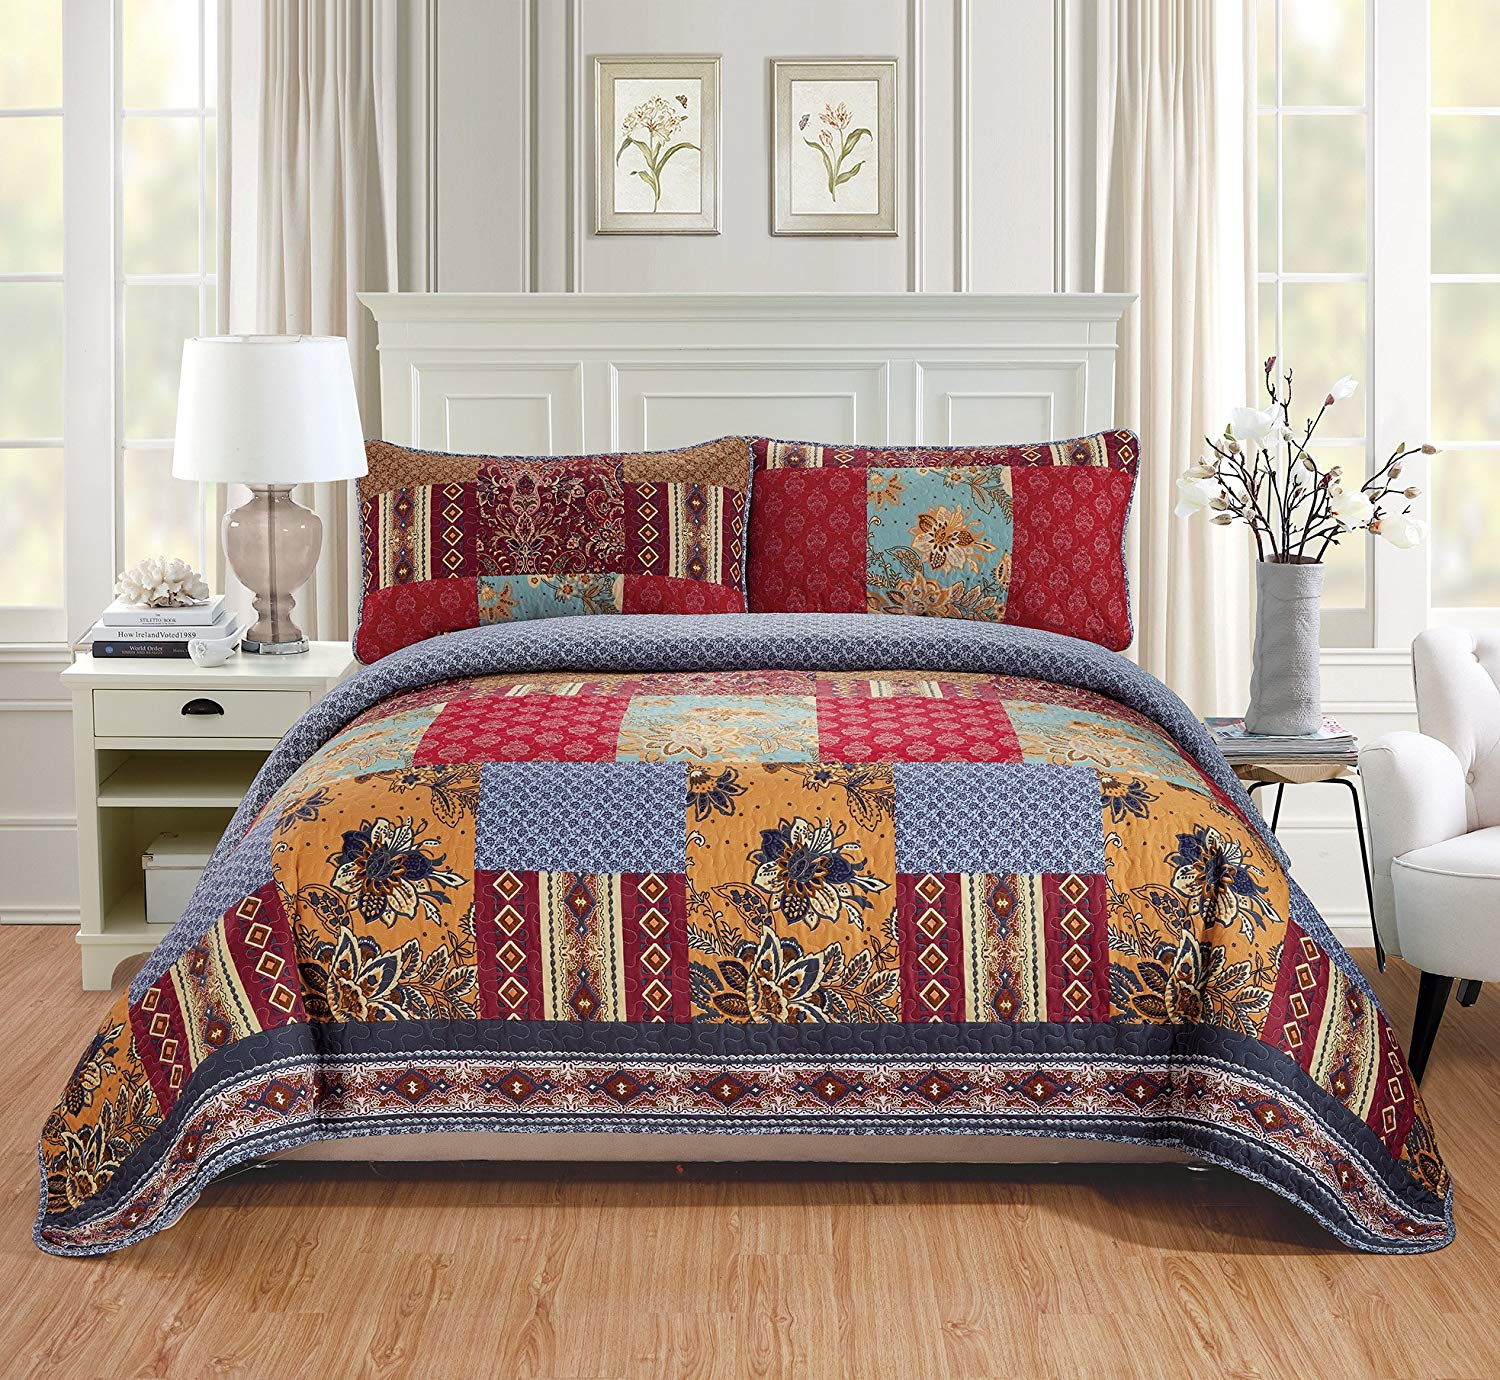 MK Home 3pc Full//Queen Bedspread Quilted Print Floral Beige Red Blue Taupe Over Size New # Jane 64